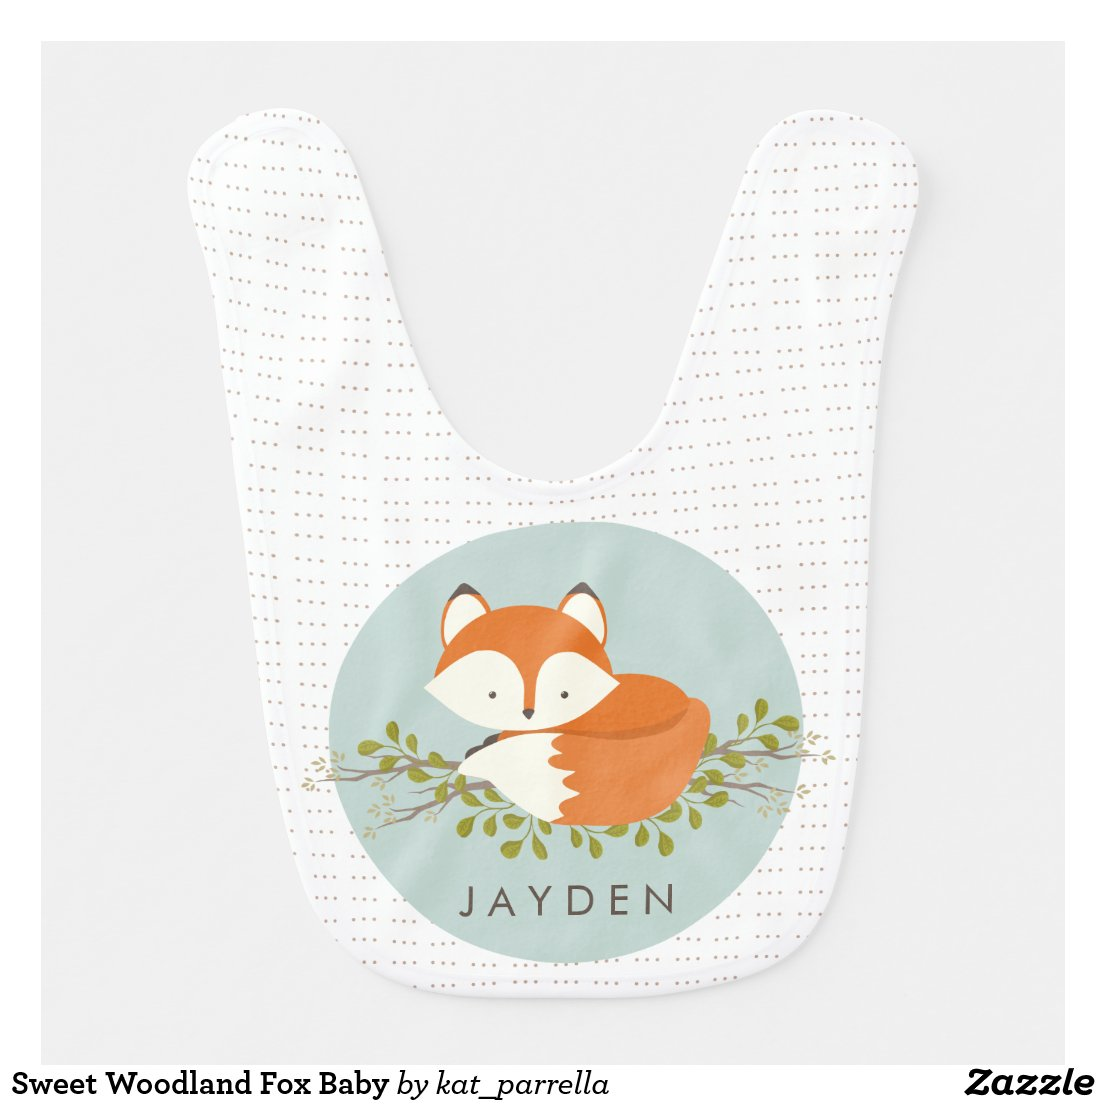 Sweet Woodland Fox Baby